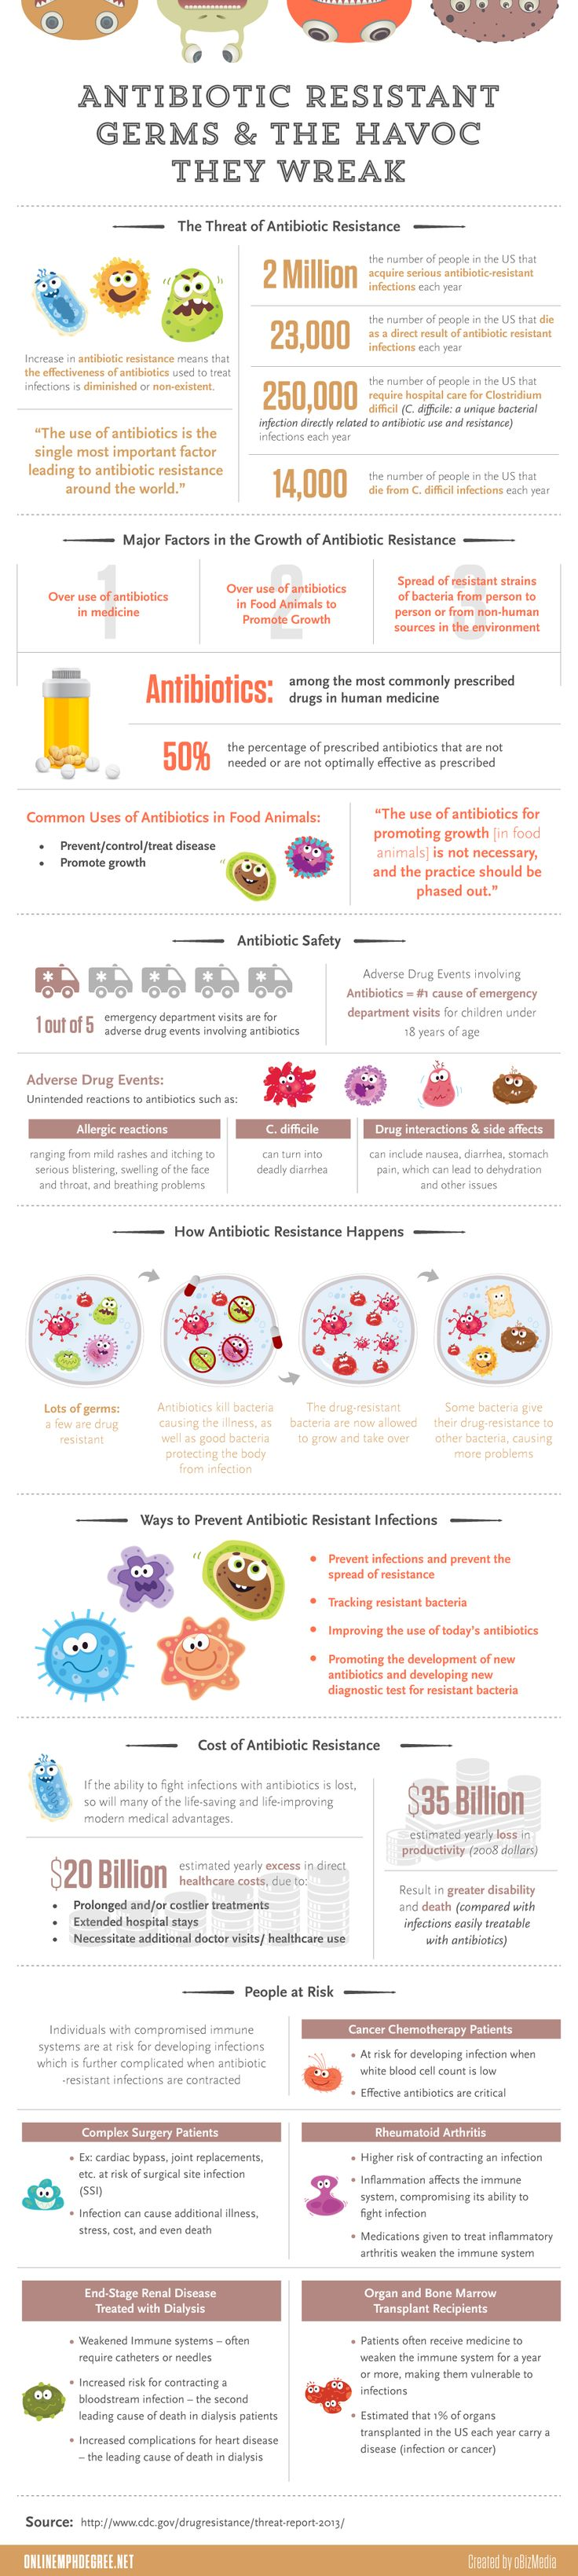 Antibiotics Resistant Germs